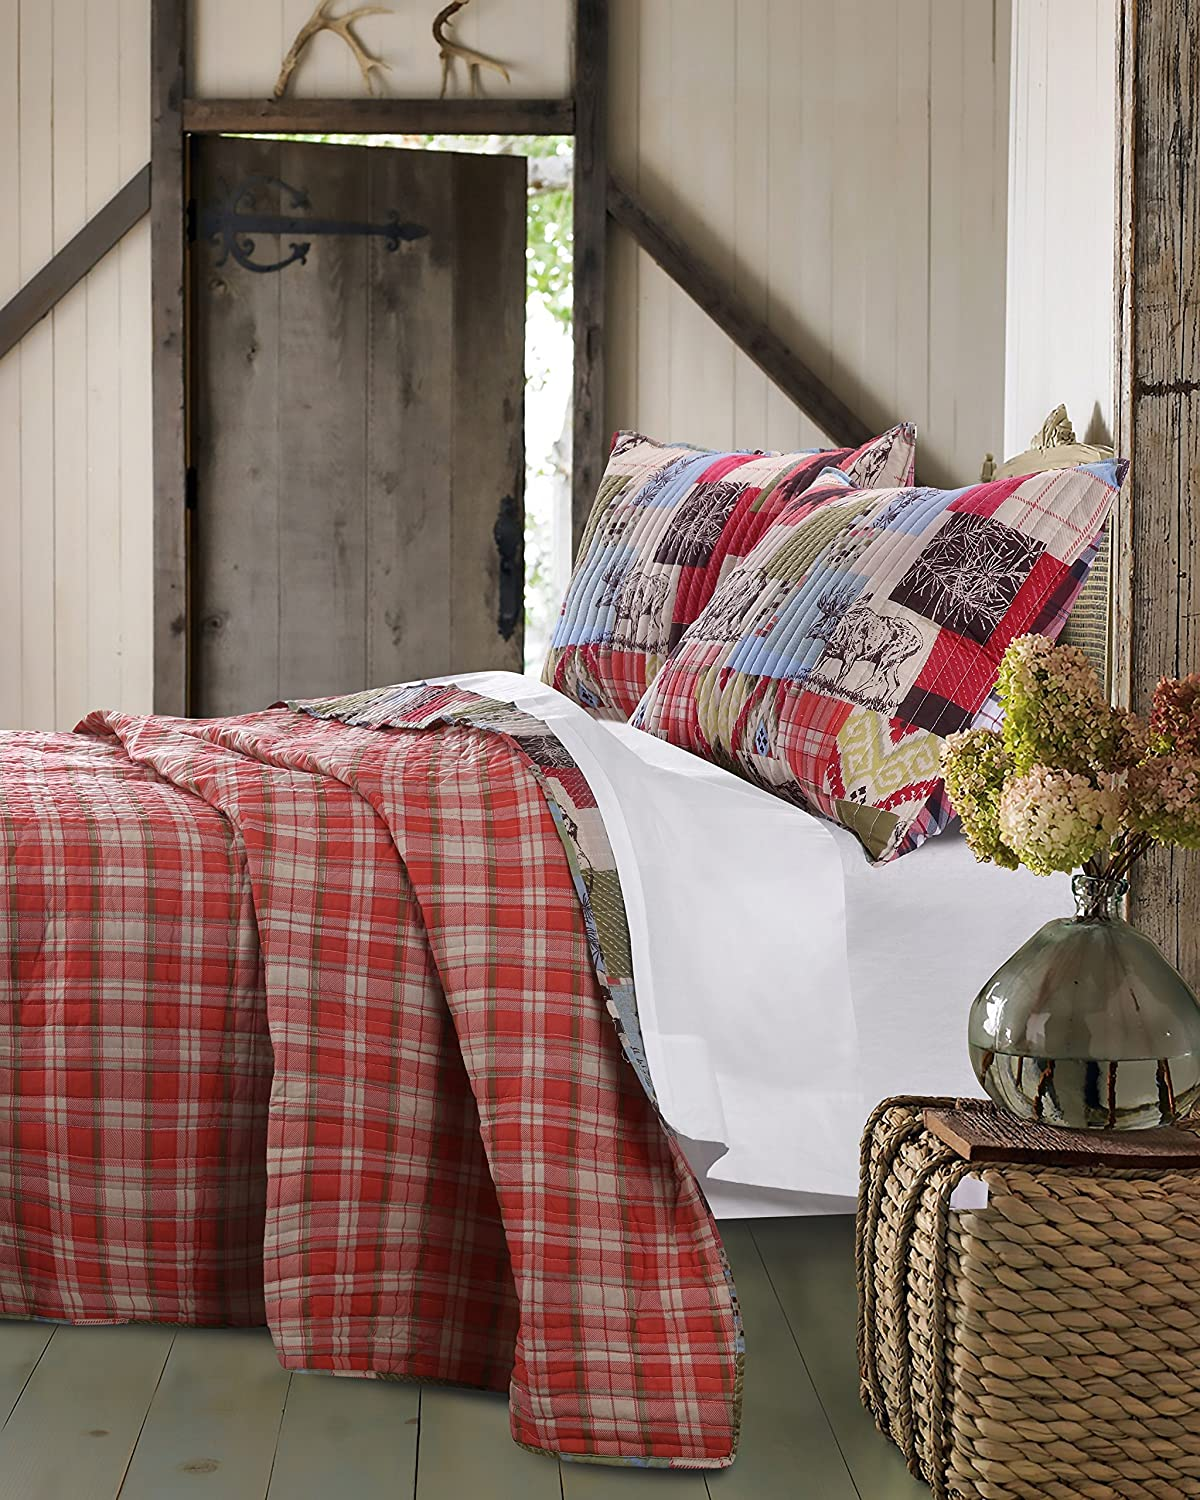 amazoncom greenland home 3 piece rustic lodge quilt set king home u0026 kitchen - Greenland Home Fashions